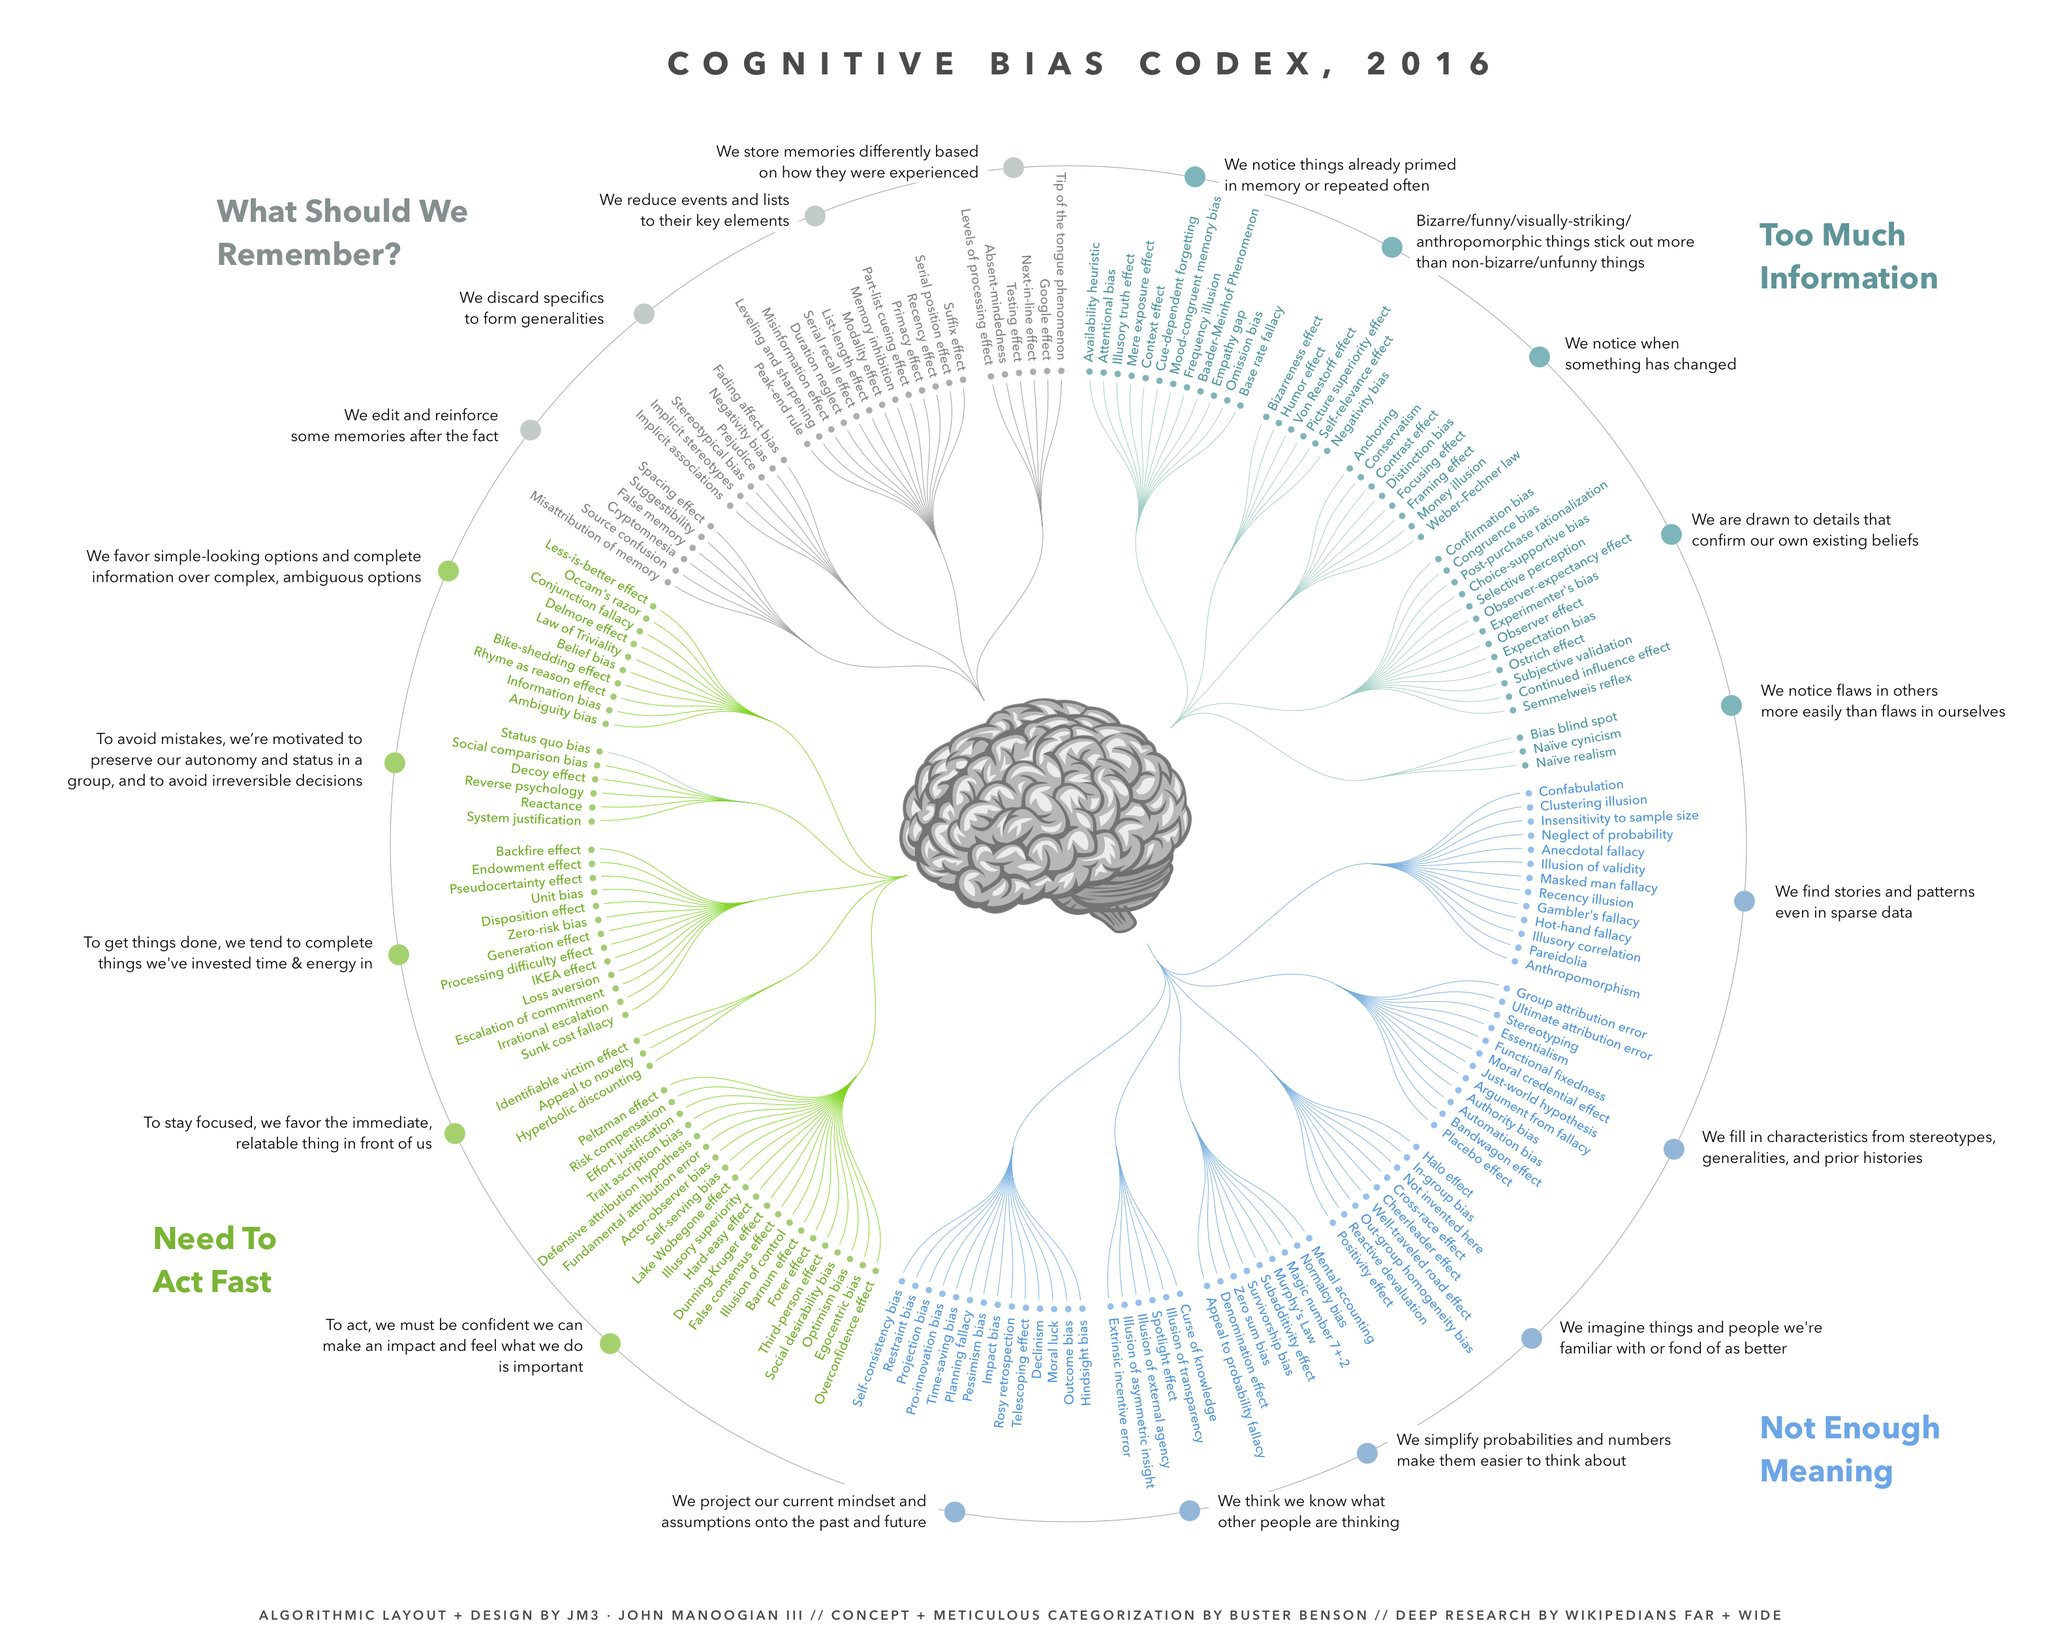 An infographic if many forms of cognitive bias, the contents of which are summarized in the article located at https://medium.com/better-humans/cognitive-bias-cheat-sheet-55a472476b18